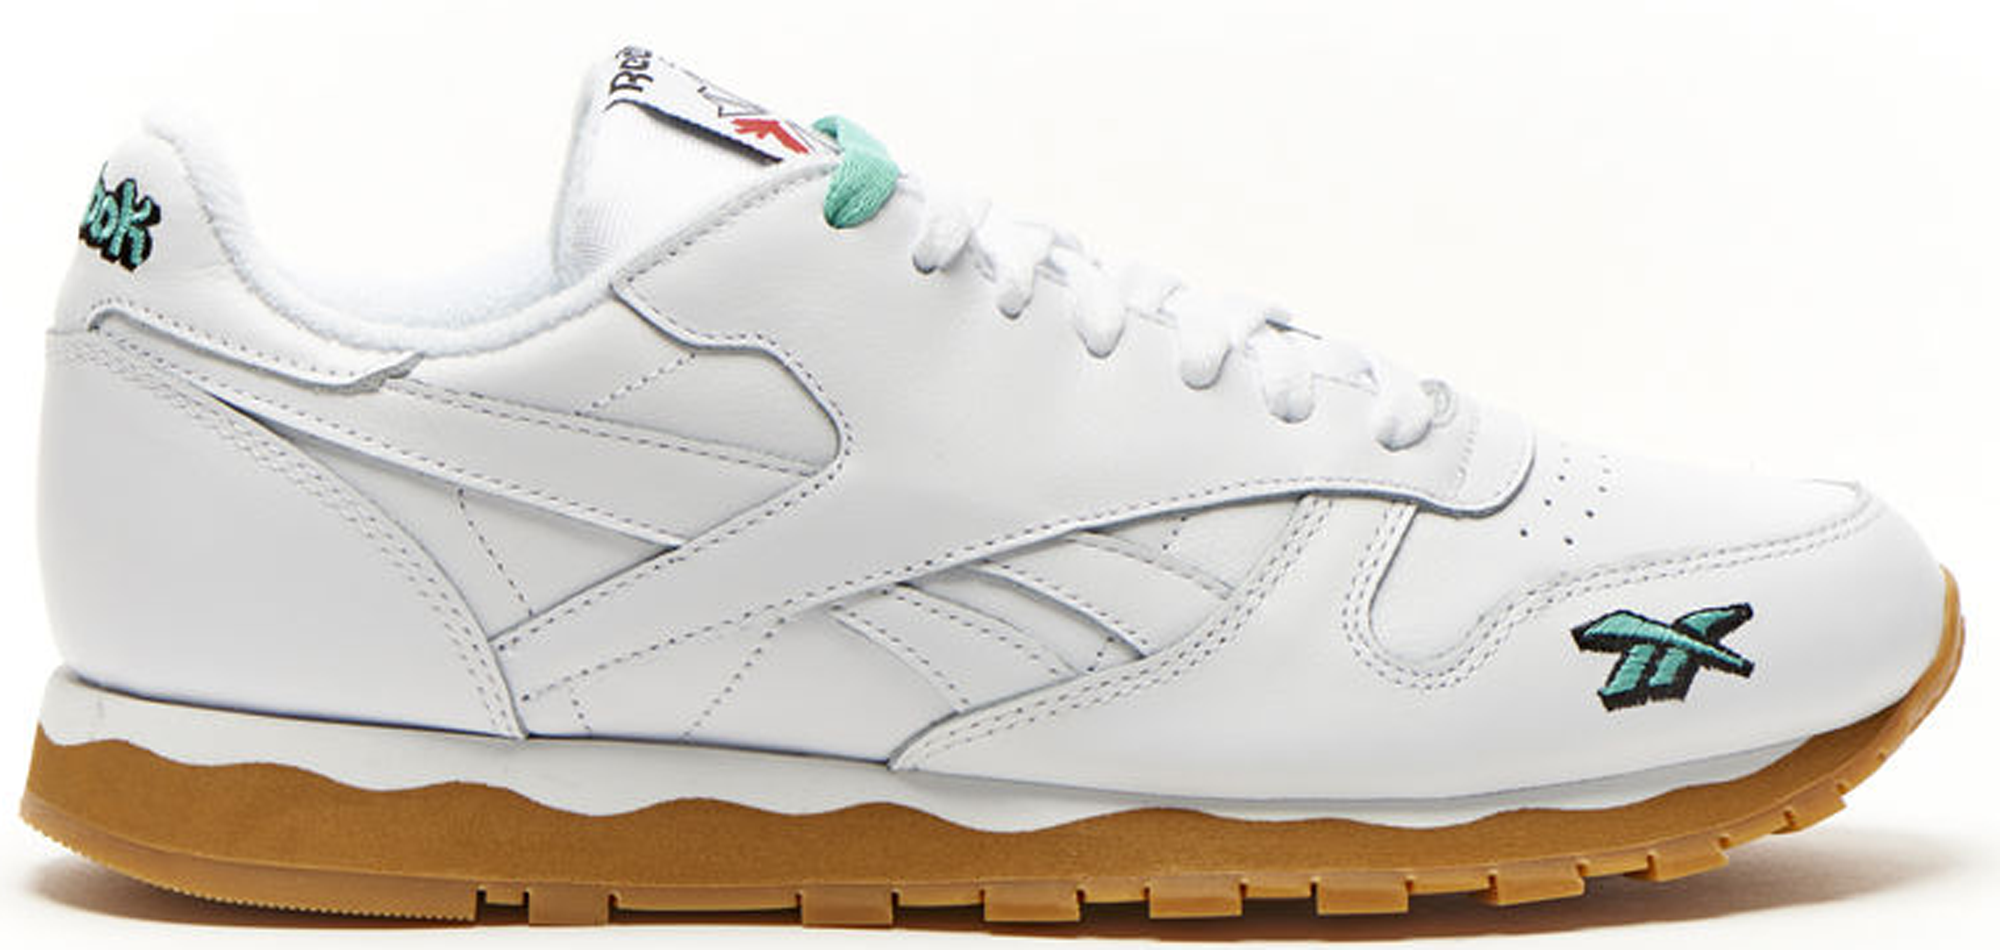 Reebok Classic Leather 3AM Atlanta (FRKO Rico)